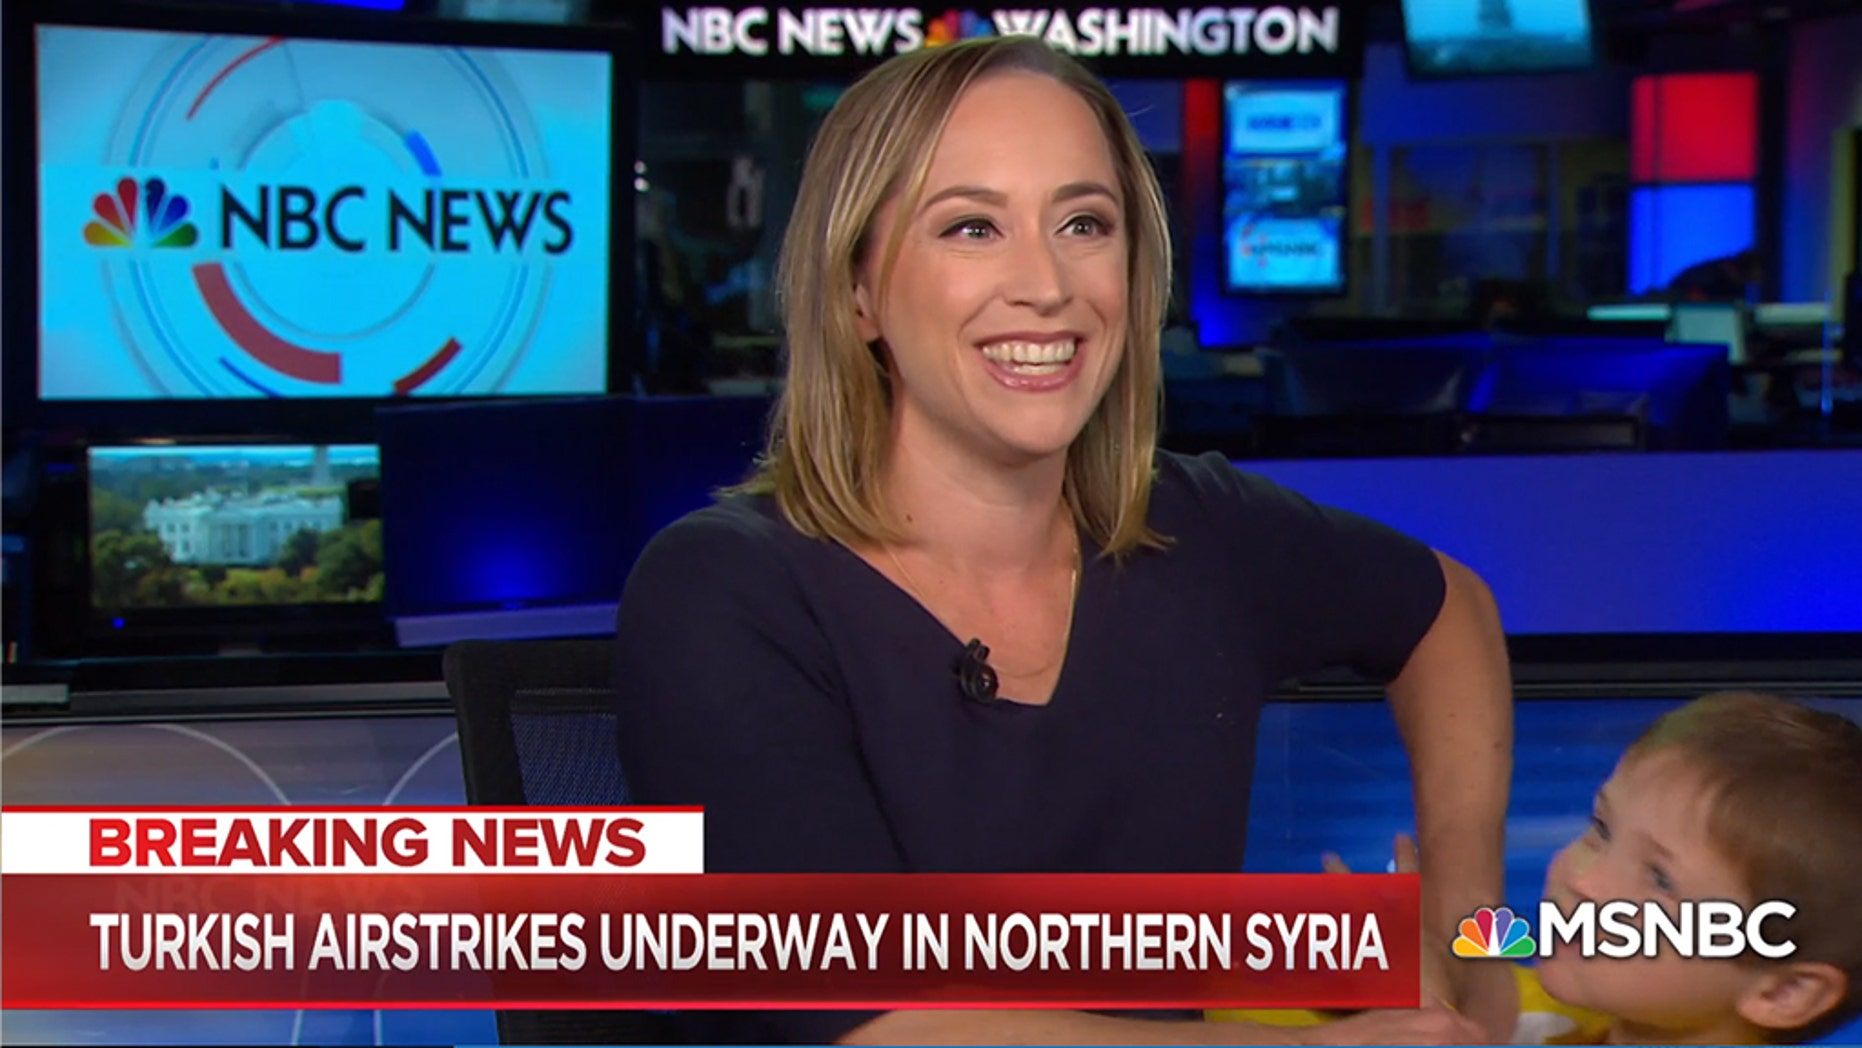 NBC reporter Courtney Kube's story on Syria had an unexpected guest weigh in during her live broadcast on Wednesday